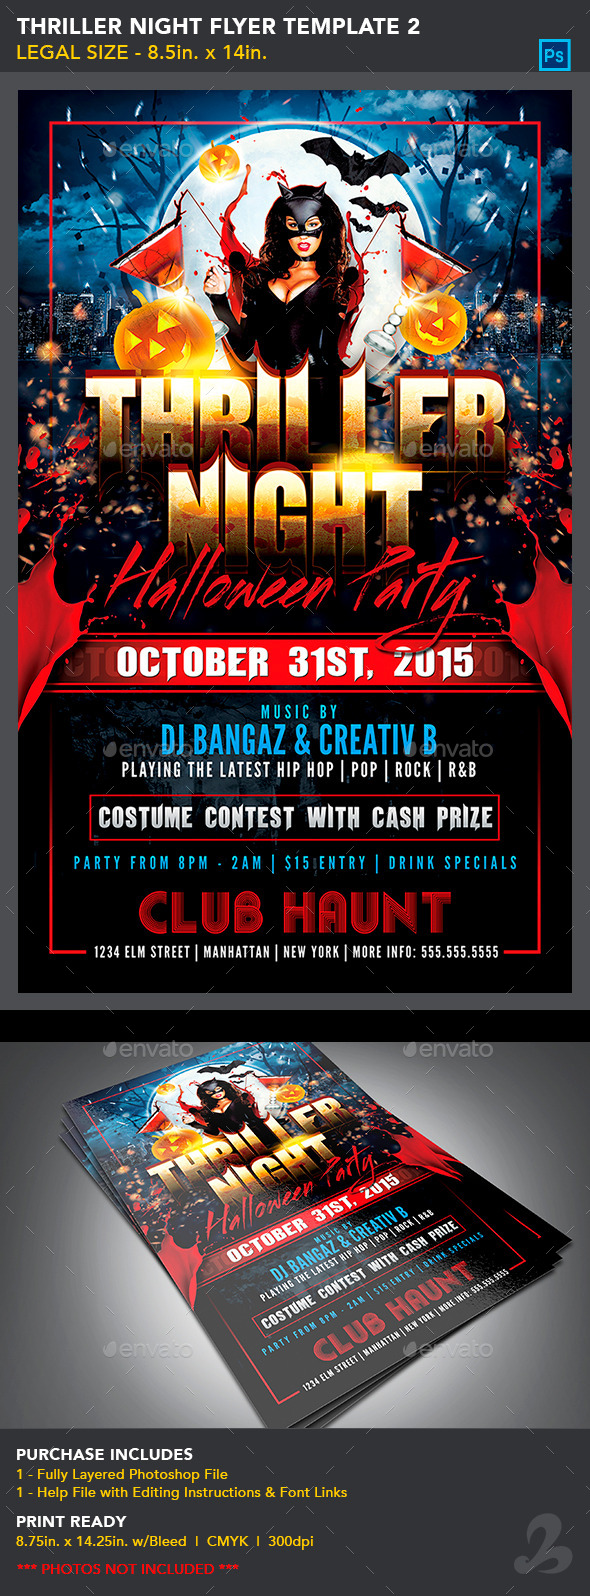 Thriller Night Halloween Flyer Template 2_8.5x14 - Holidays Events